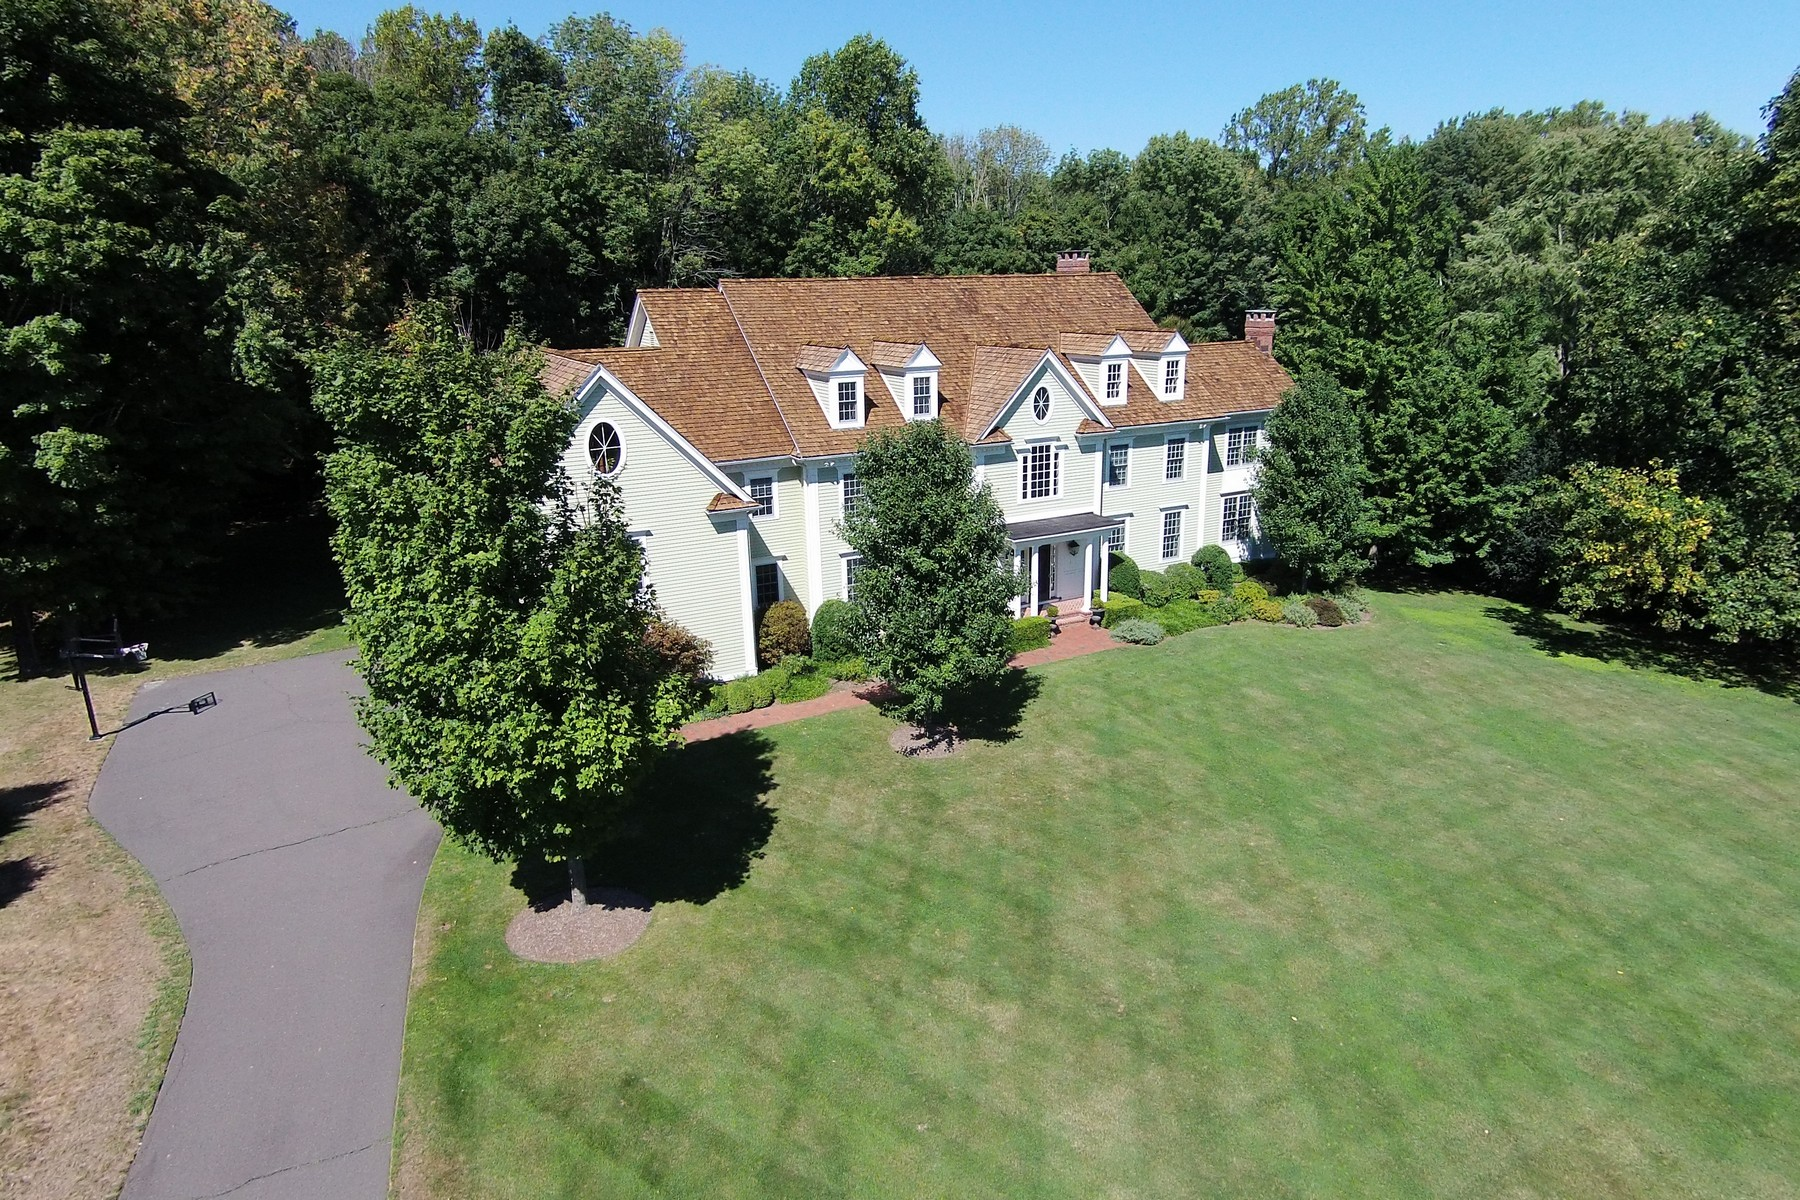 Single Family Home for Sale at BURRWOOD COMMON 70 Burrwood Common Fairfield, Connecticut, 06824 United States